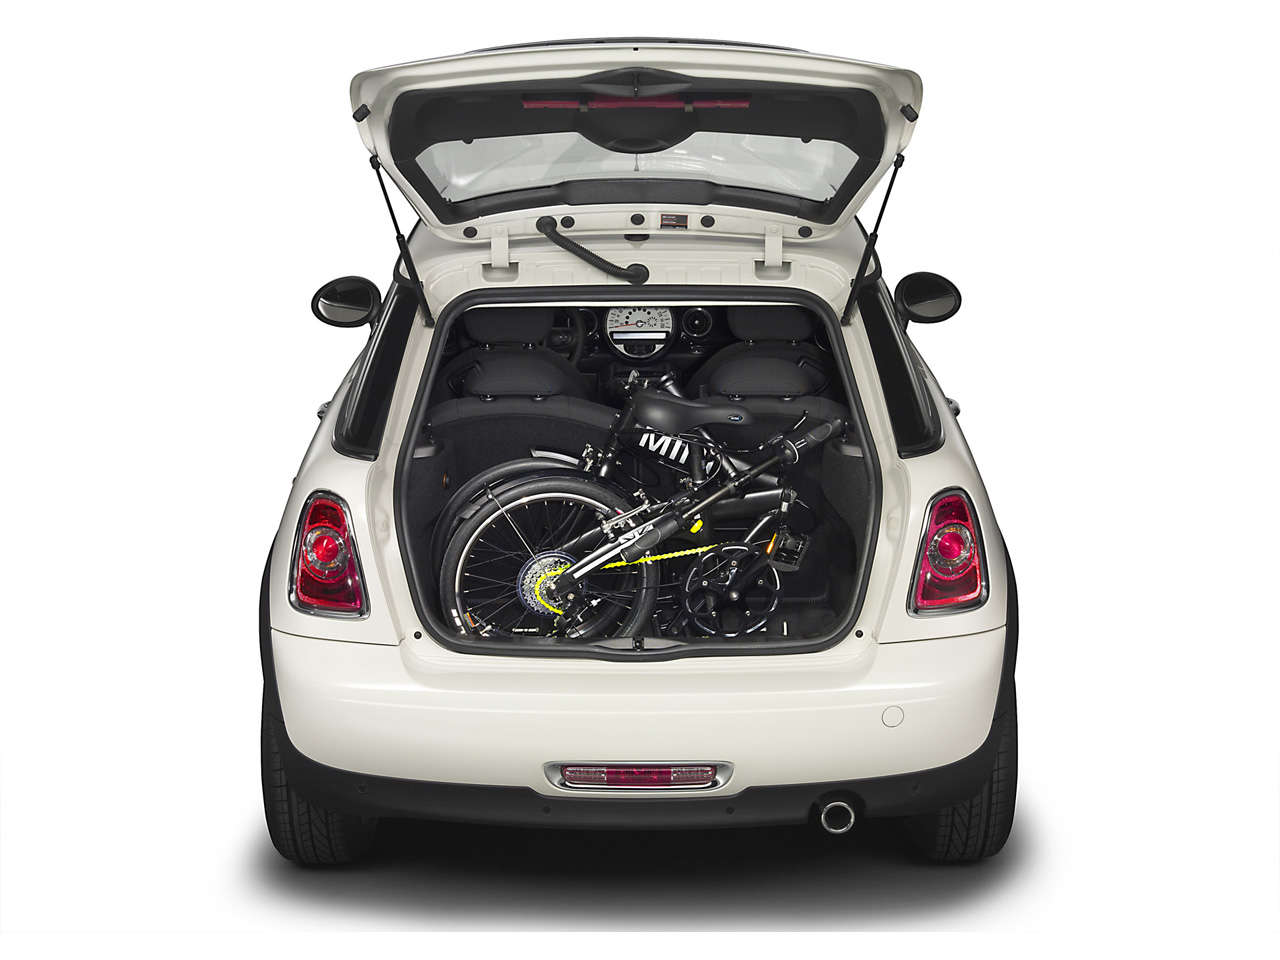 Folding bicycles can be put in the smallest of cars! Even the Origin 8 folding bicycles! Walt's Cycle, Sunnyvale, CA